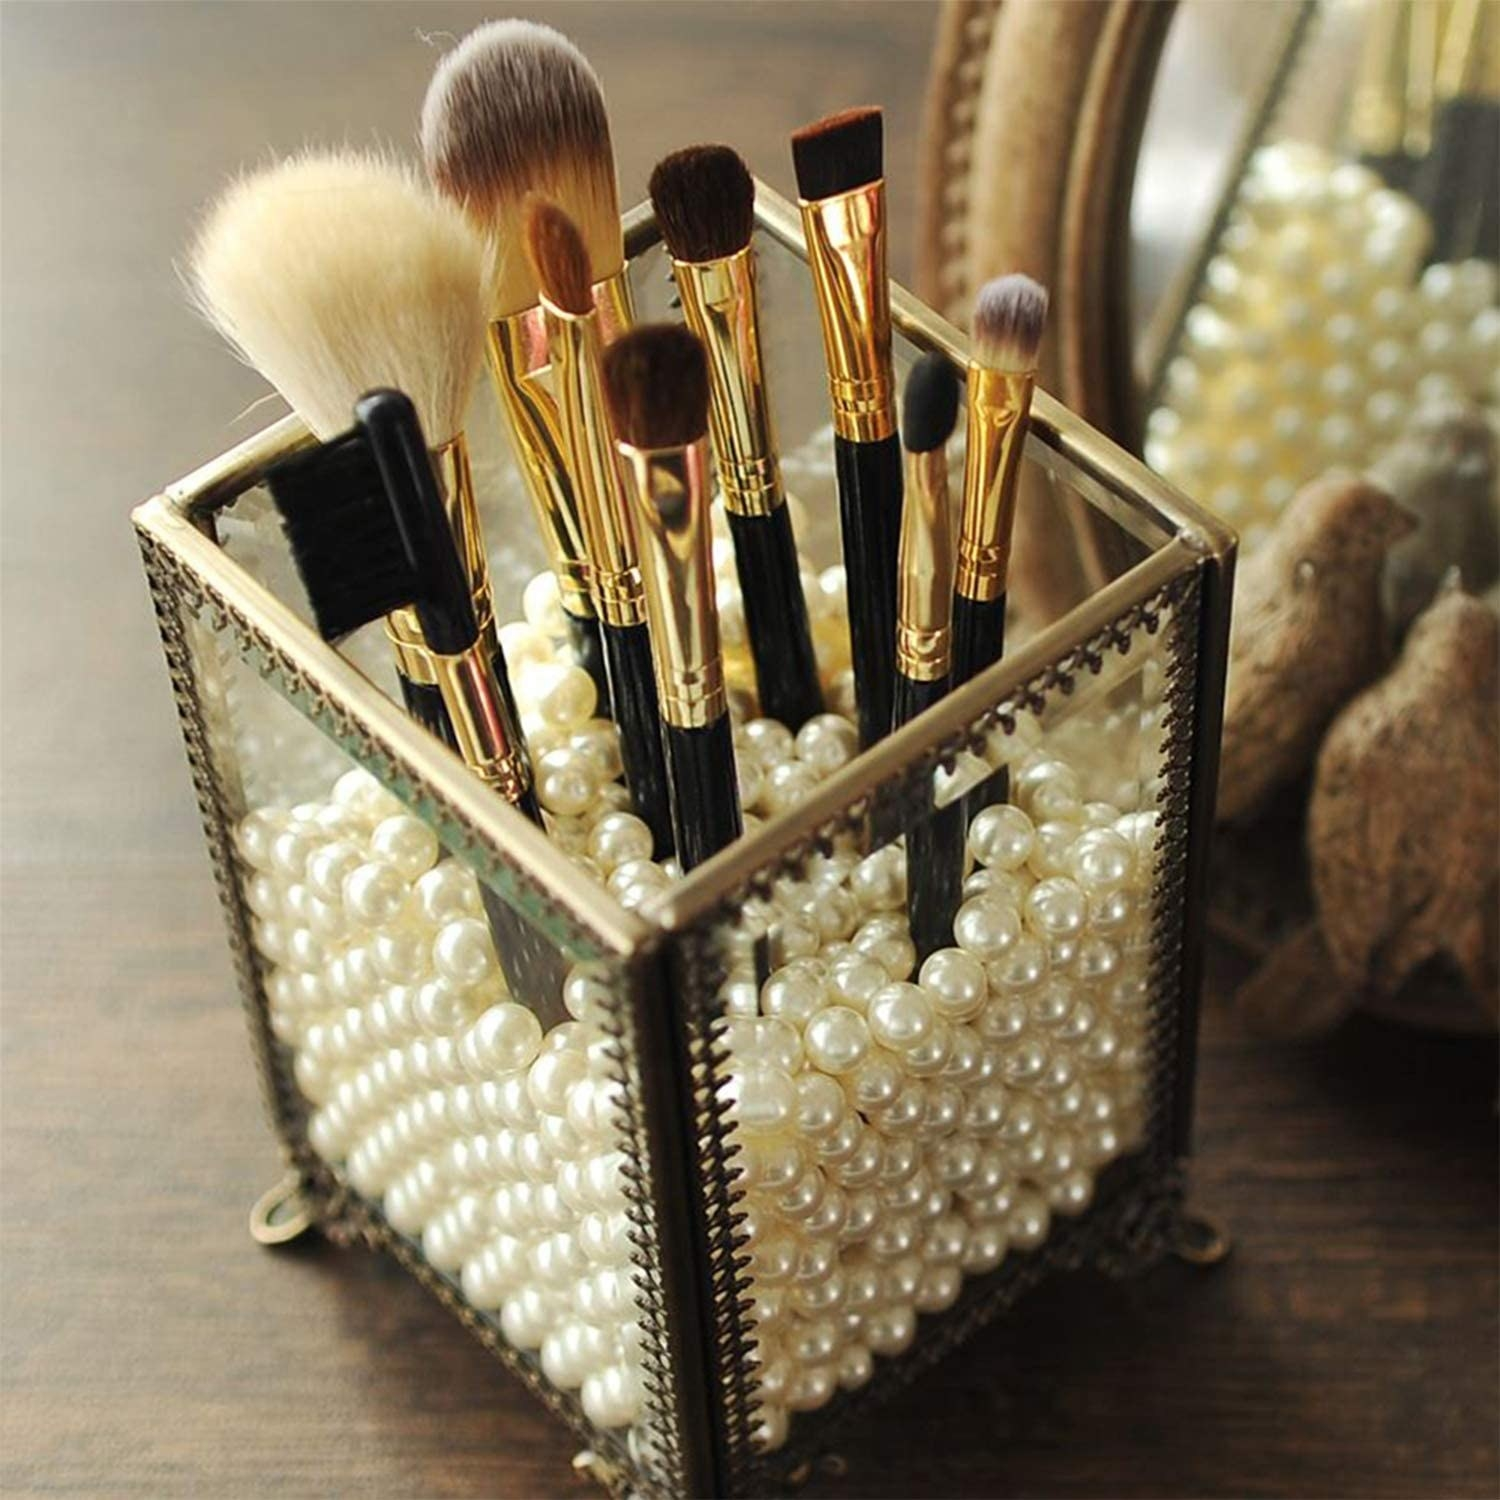 The vintage-inspired makeup brush holder filled with pearls and makeup brushes